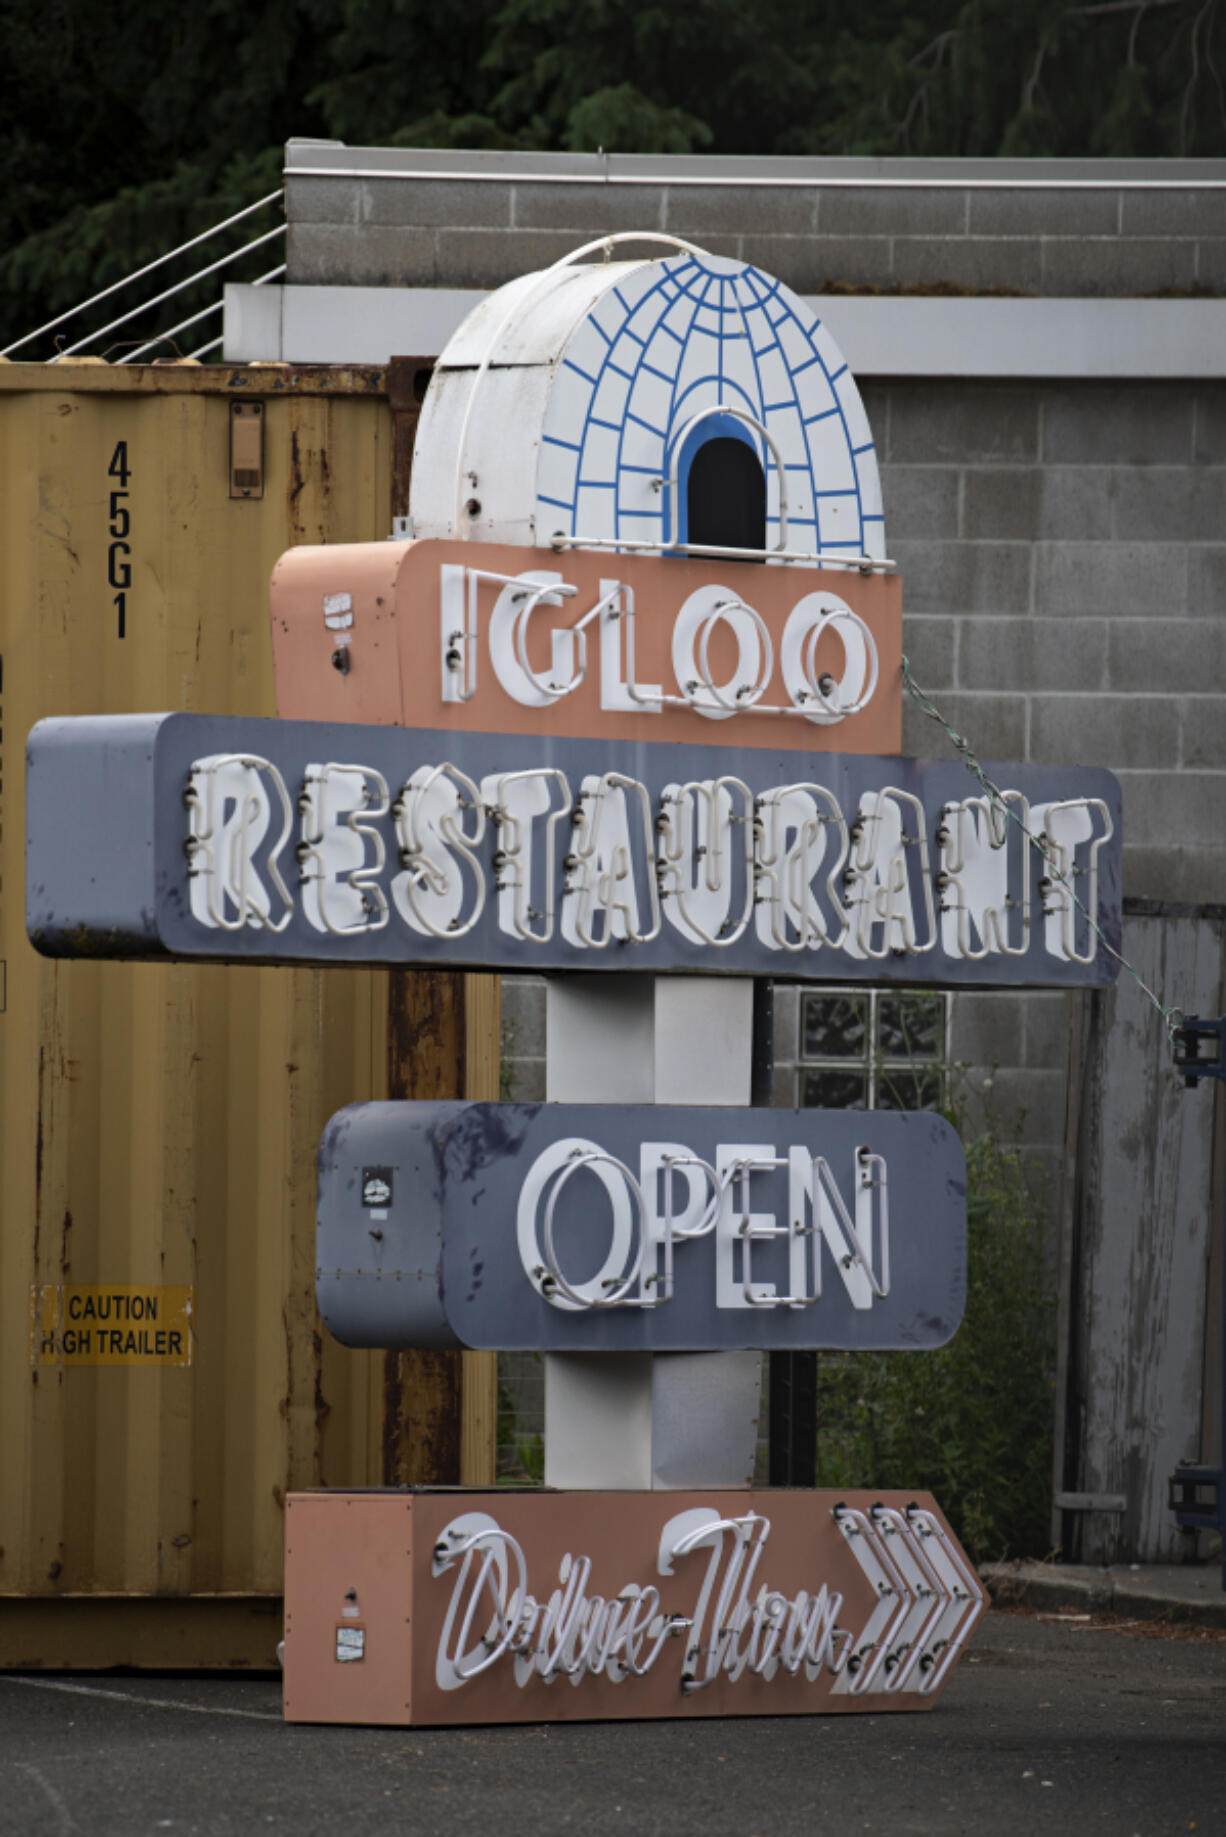 The sign for the former Igloo Restaurant is seen on the ground June 10. The iconic building that housed the Igloo, a vintage neighborhood diner, has seen its last days as a landmark restaurant.